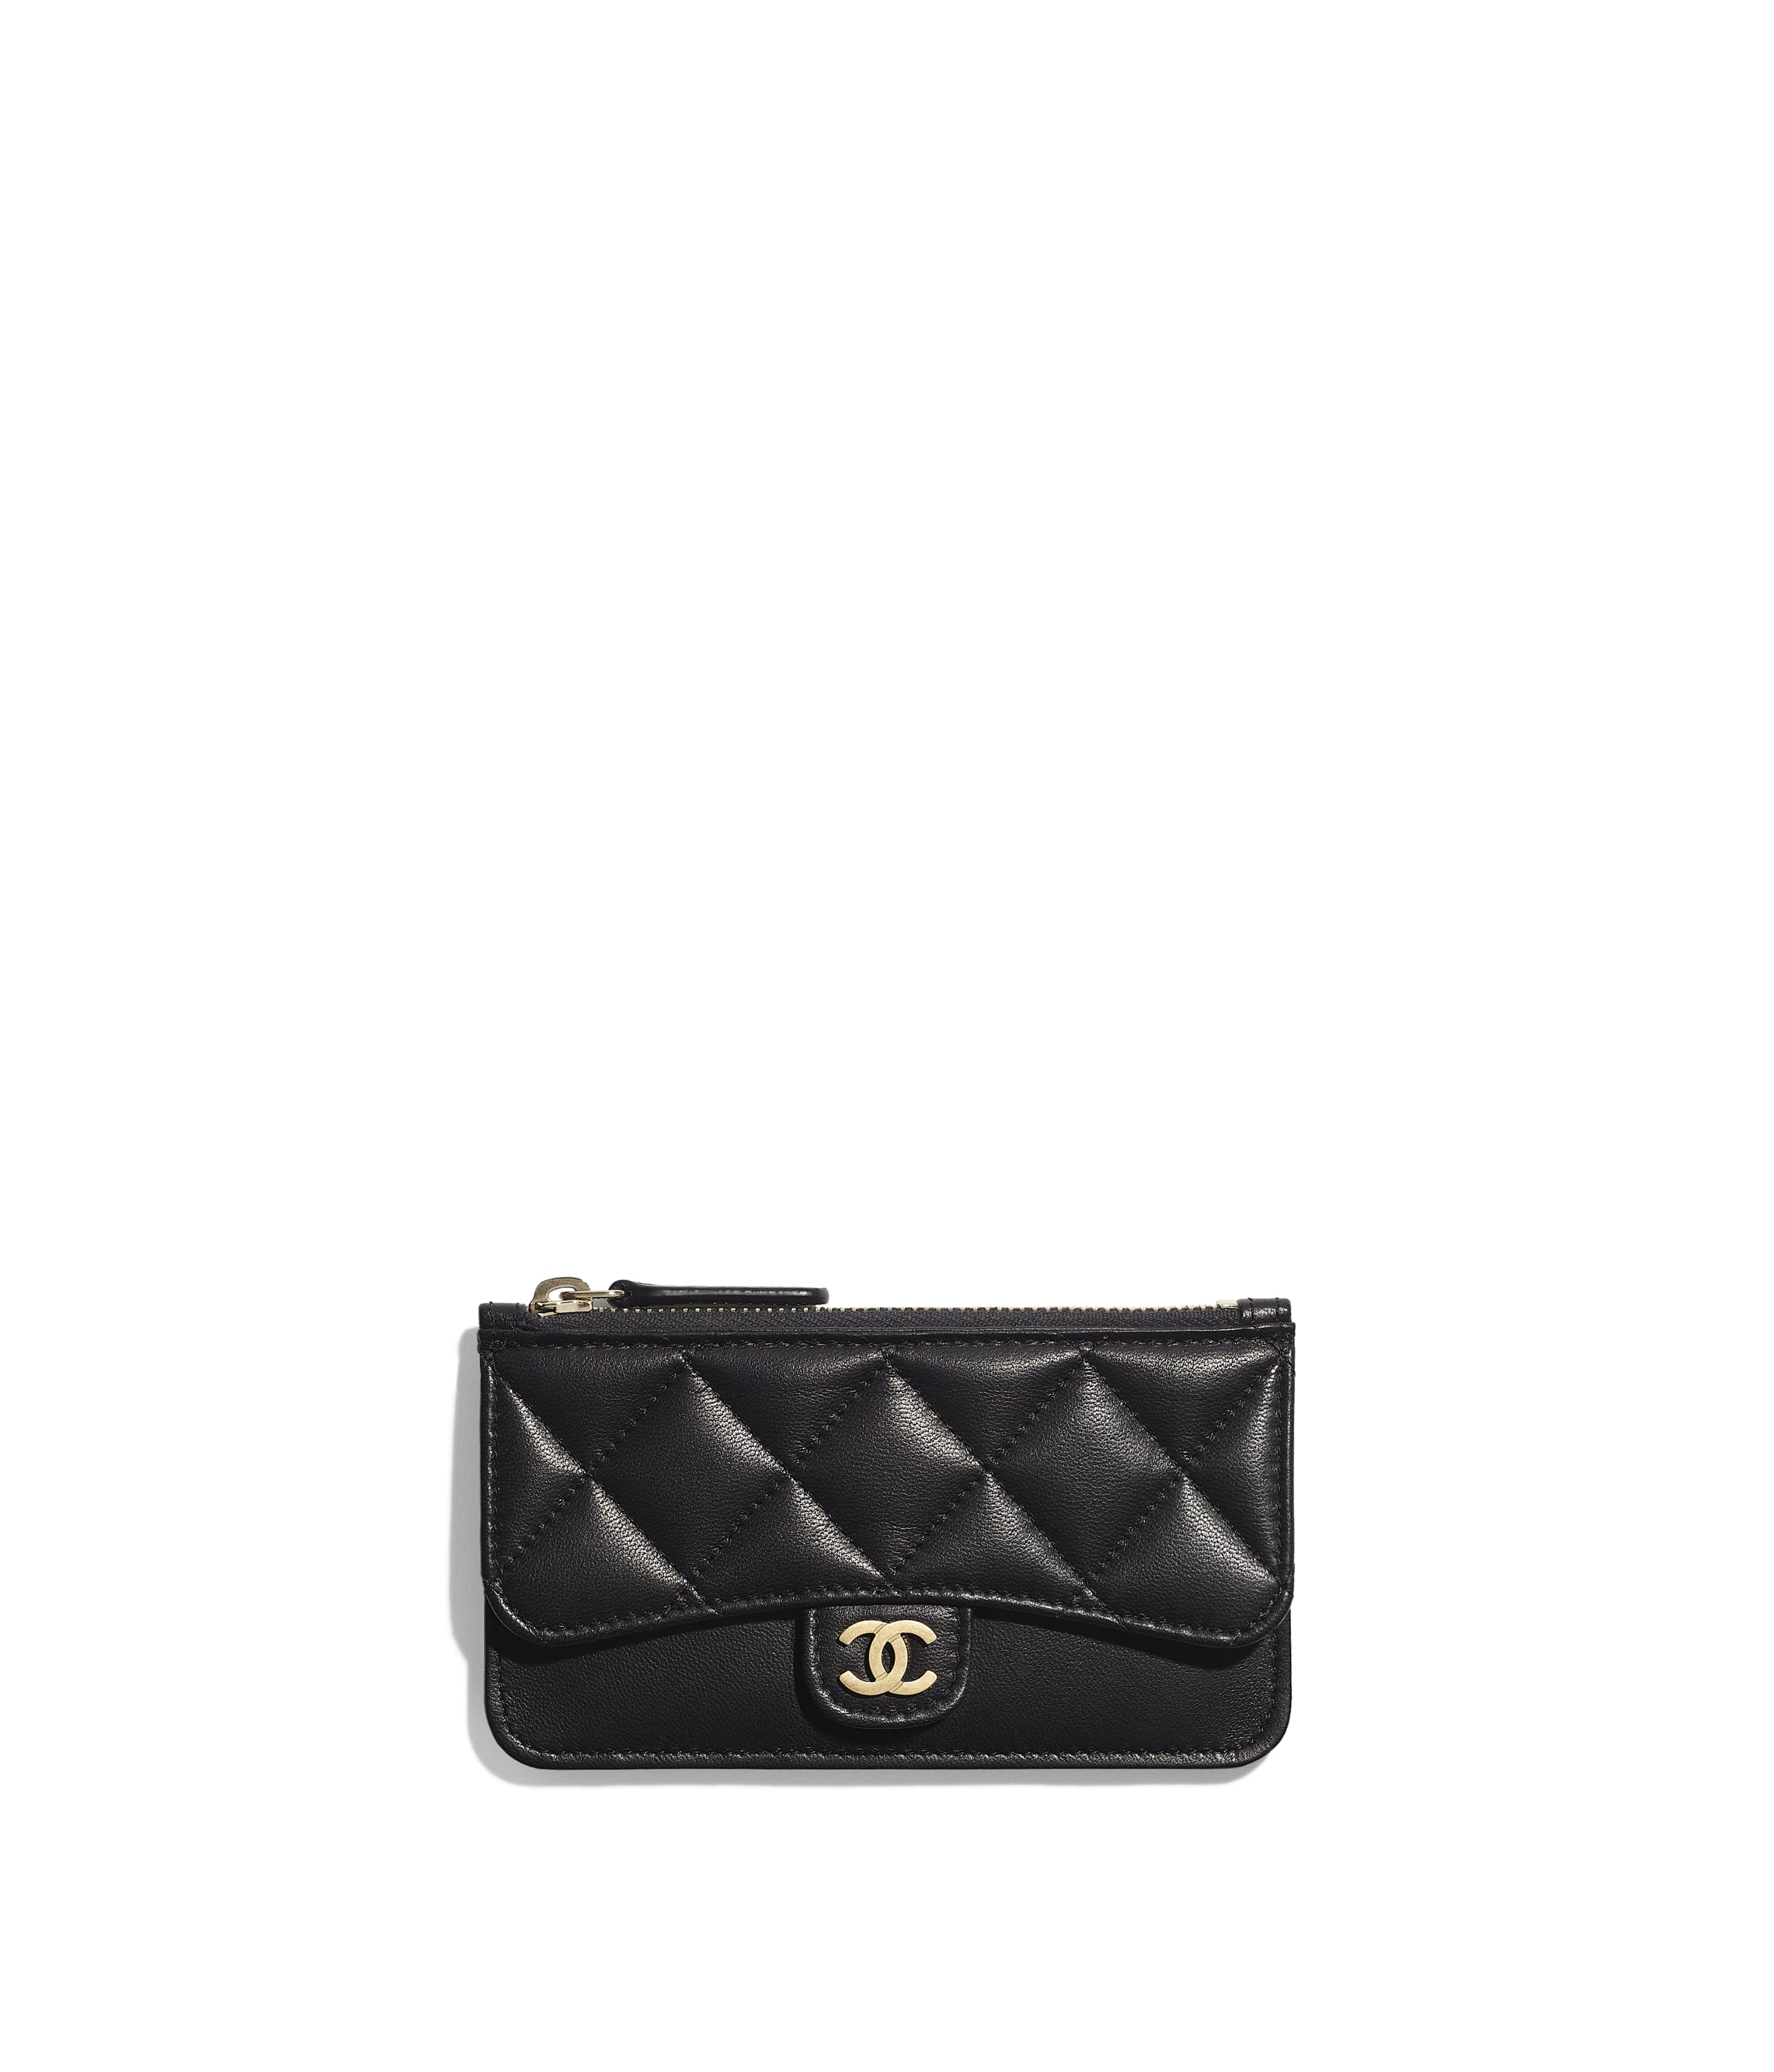 7ede1bf4e25569 Card Holders - Small Leather Goods - CHANEL